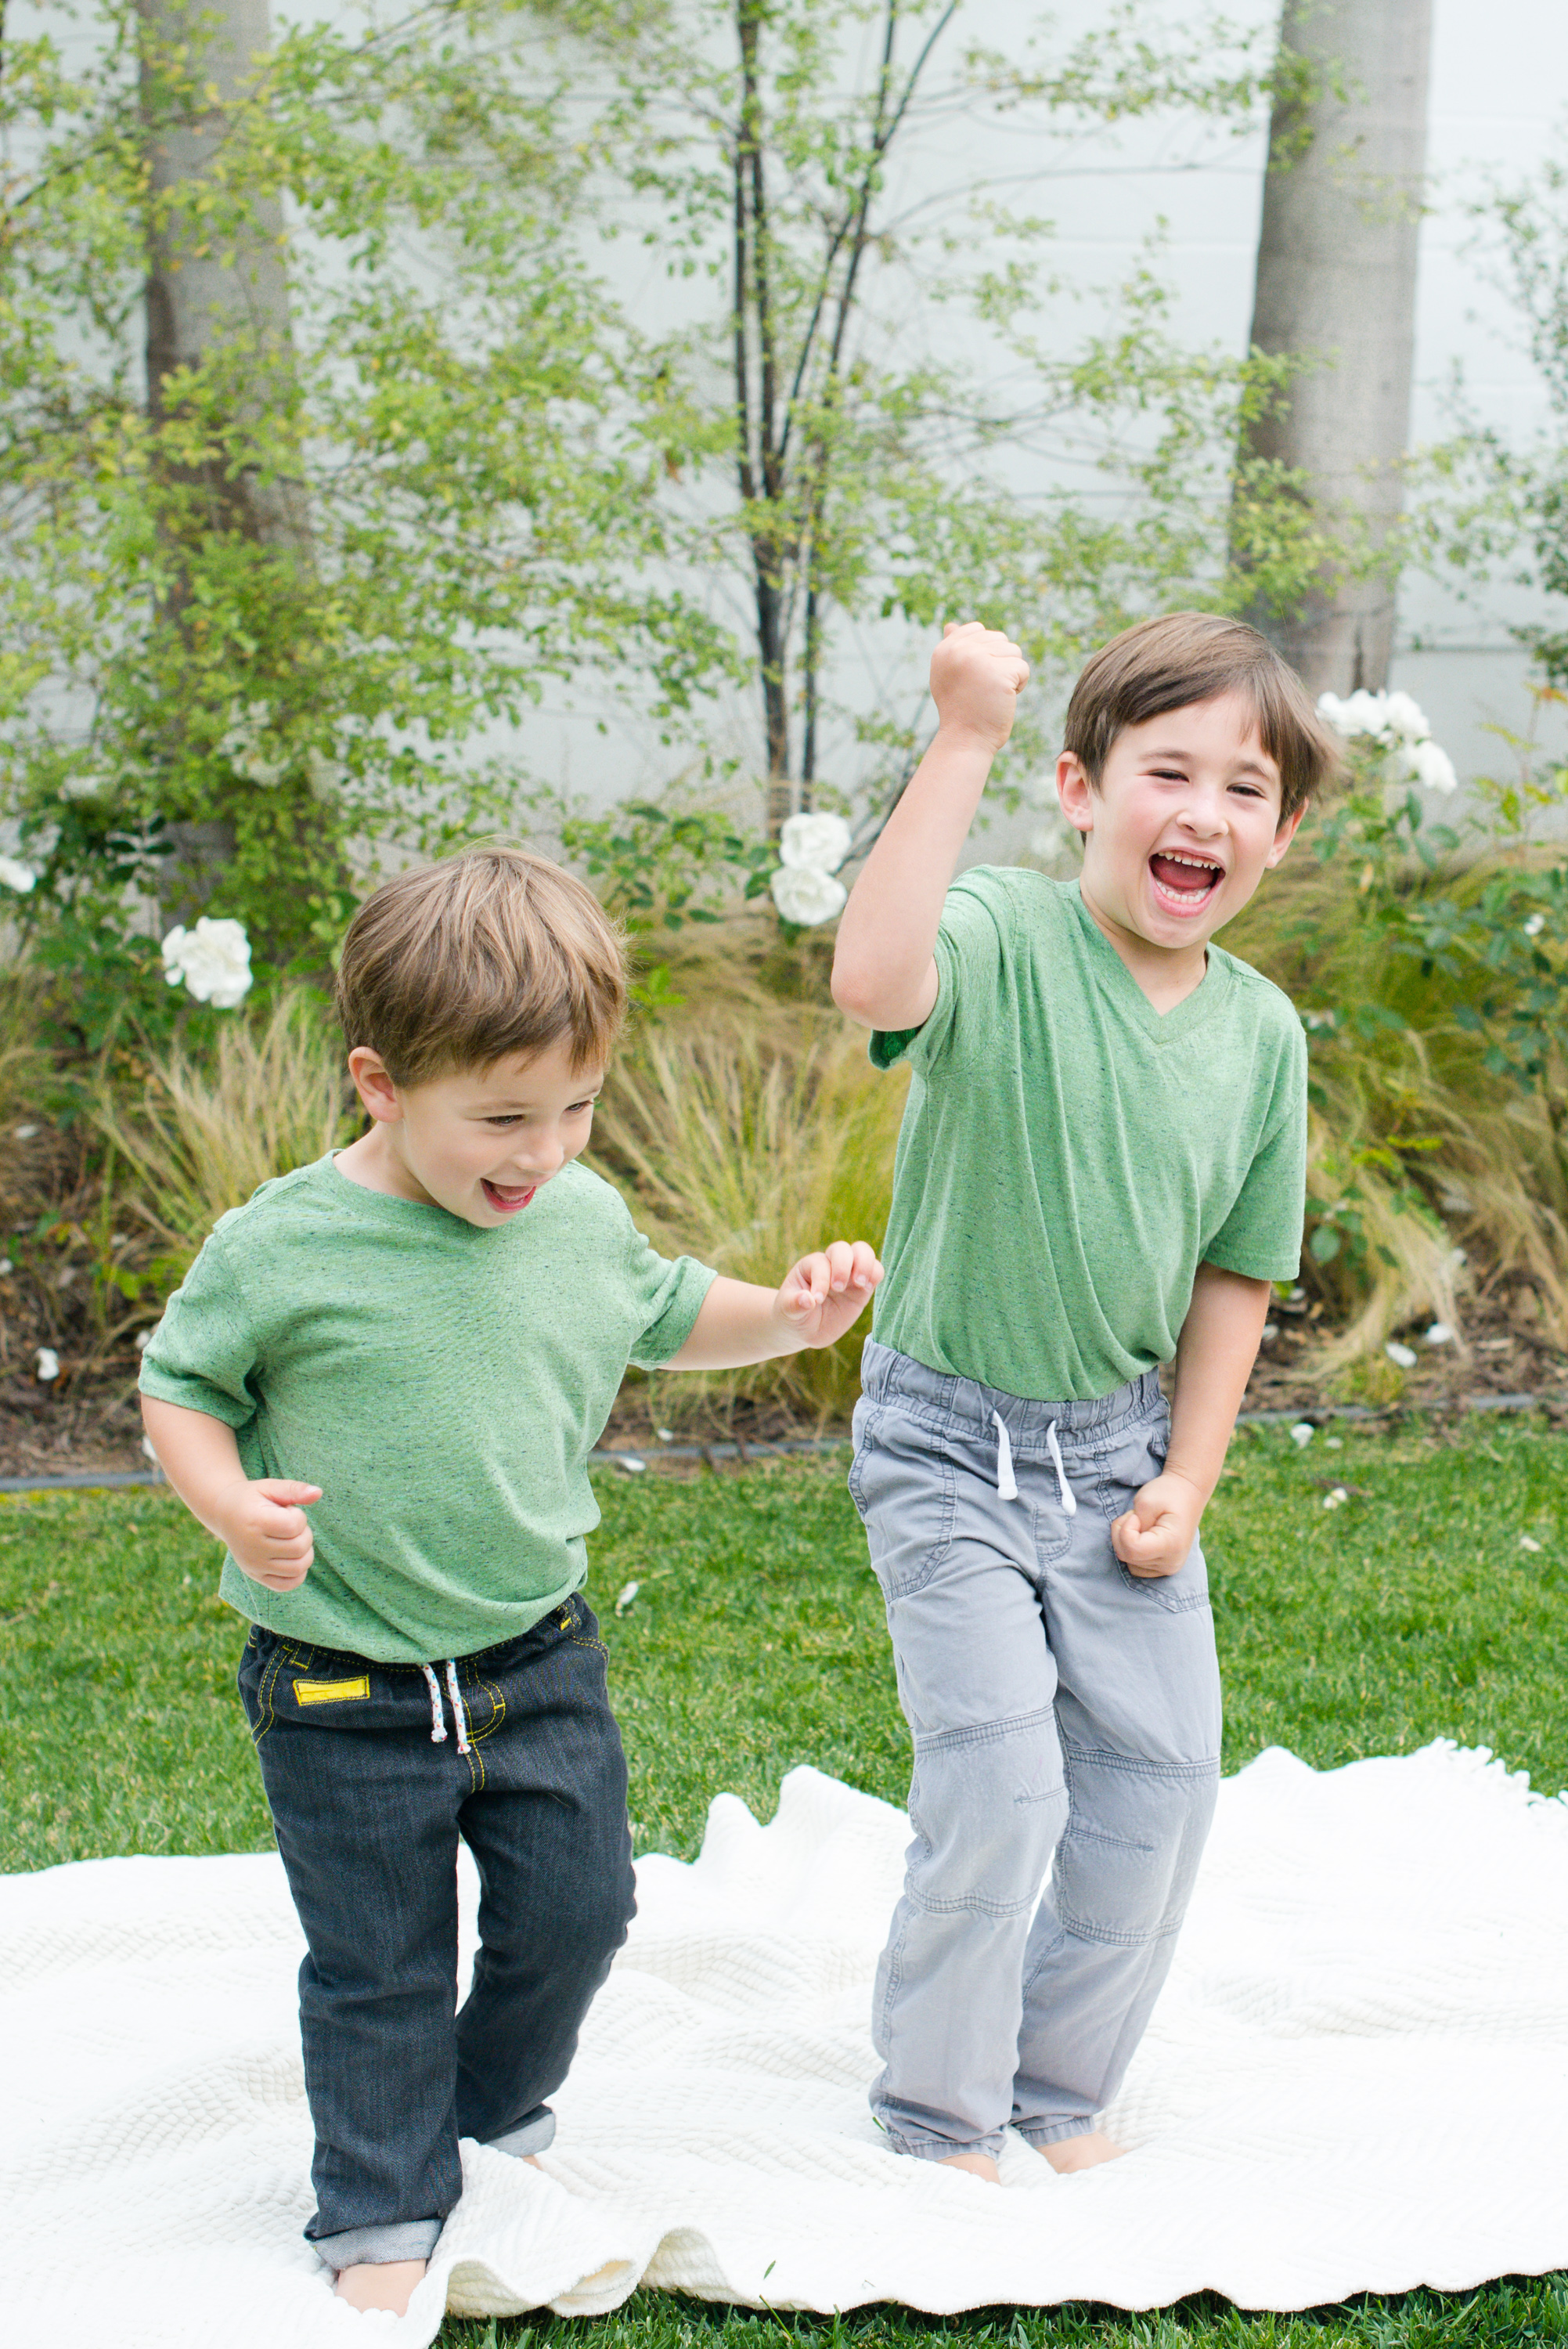 brothers acting silly in their back yard